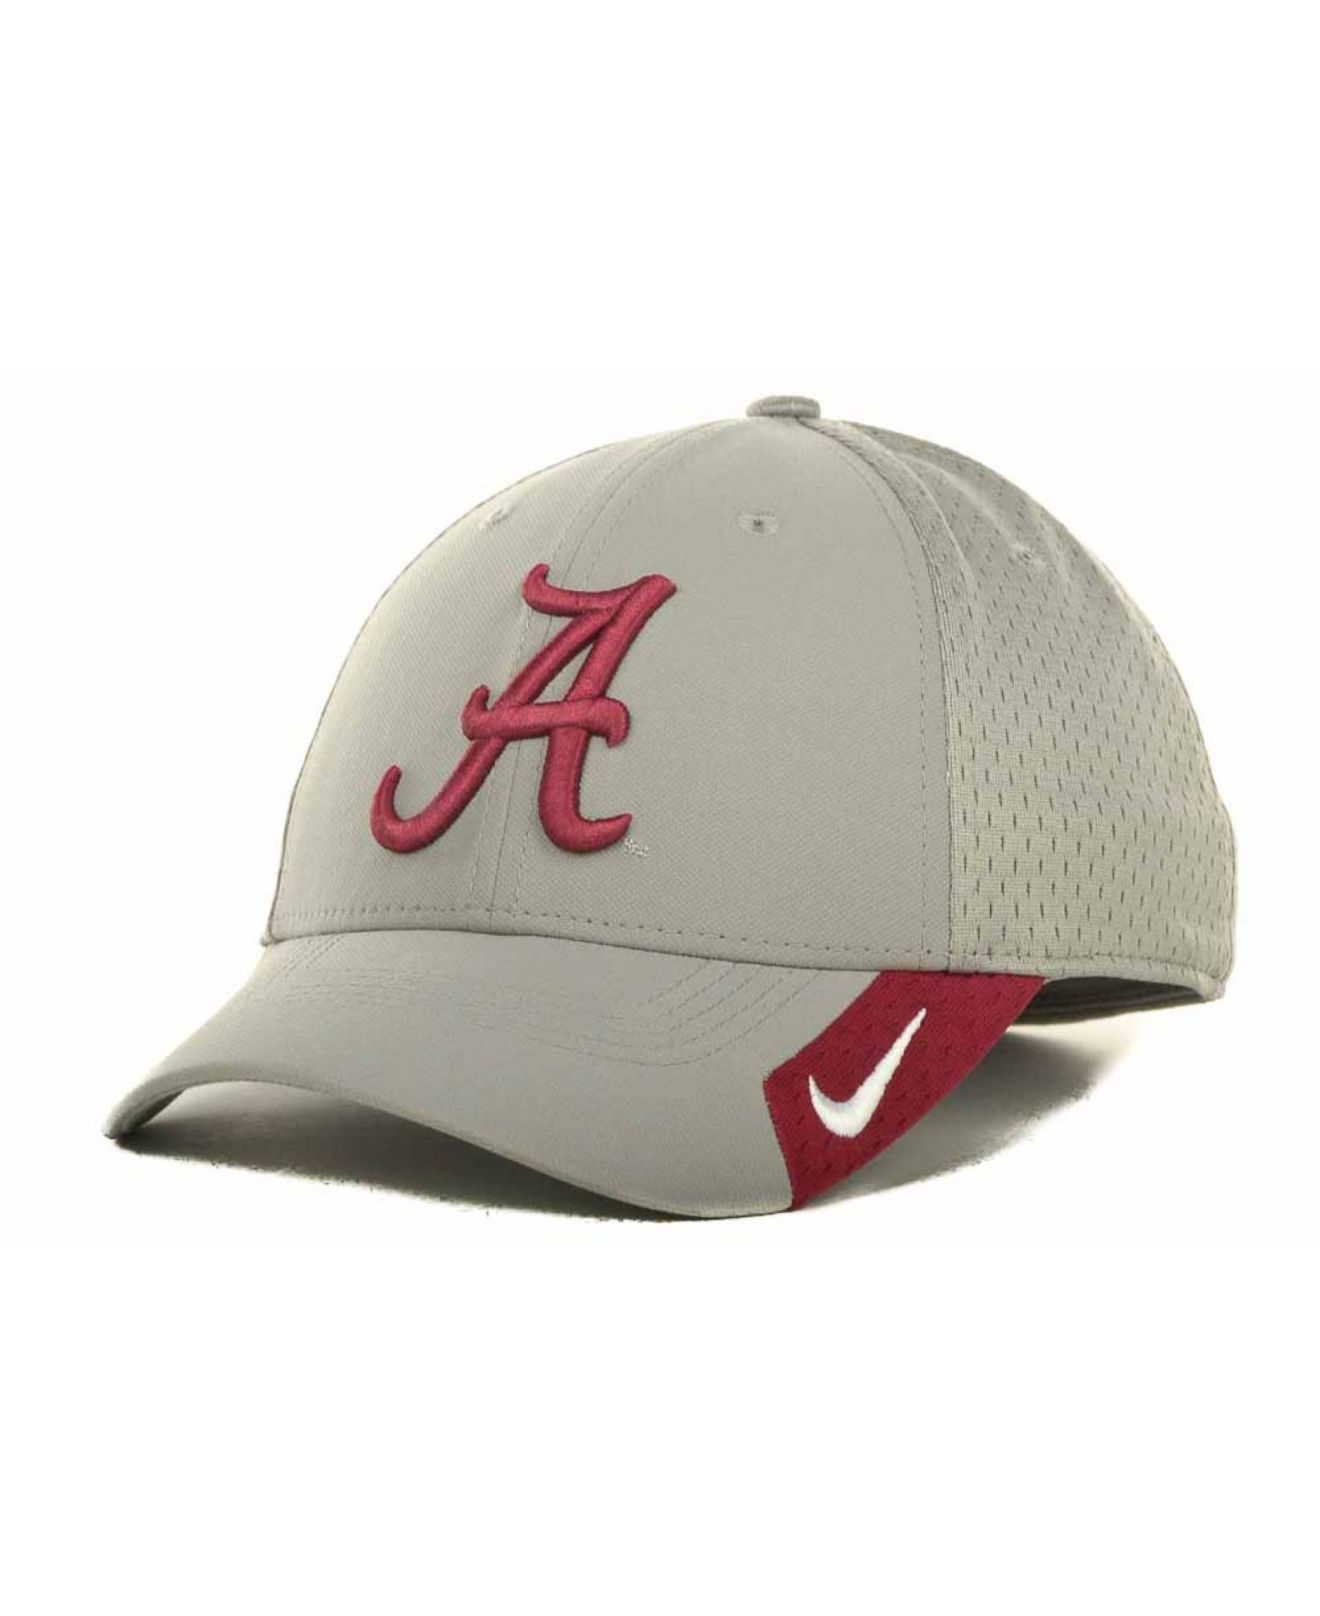 695e319beb9 ... discount code for lyst nike alabama crimson tide mesh swooshflex cap in  gray for men c2478